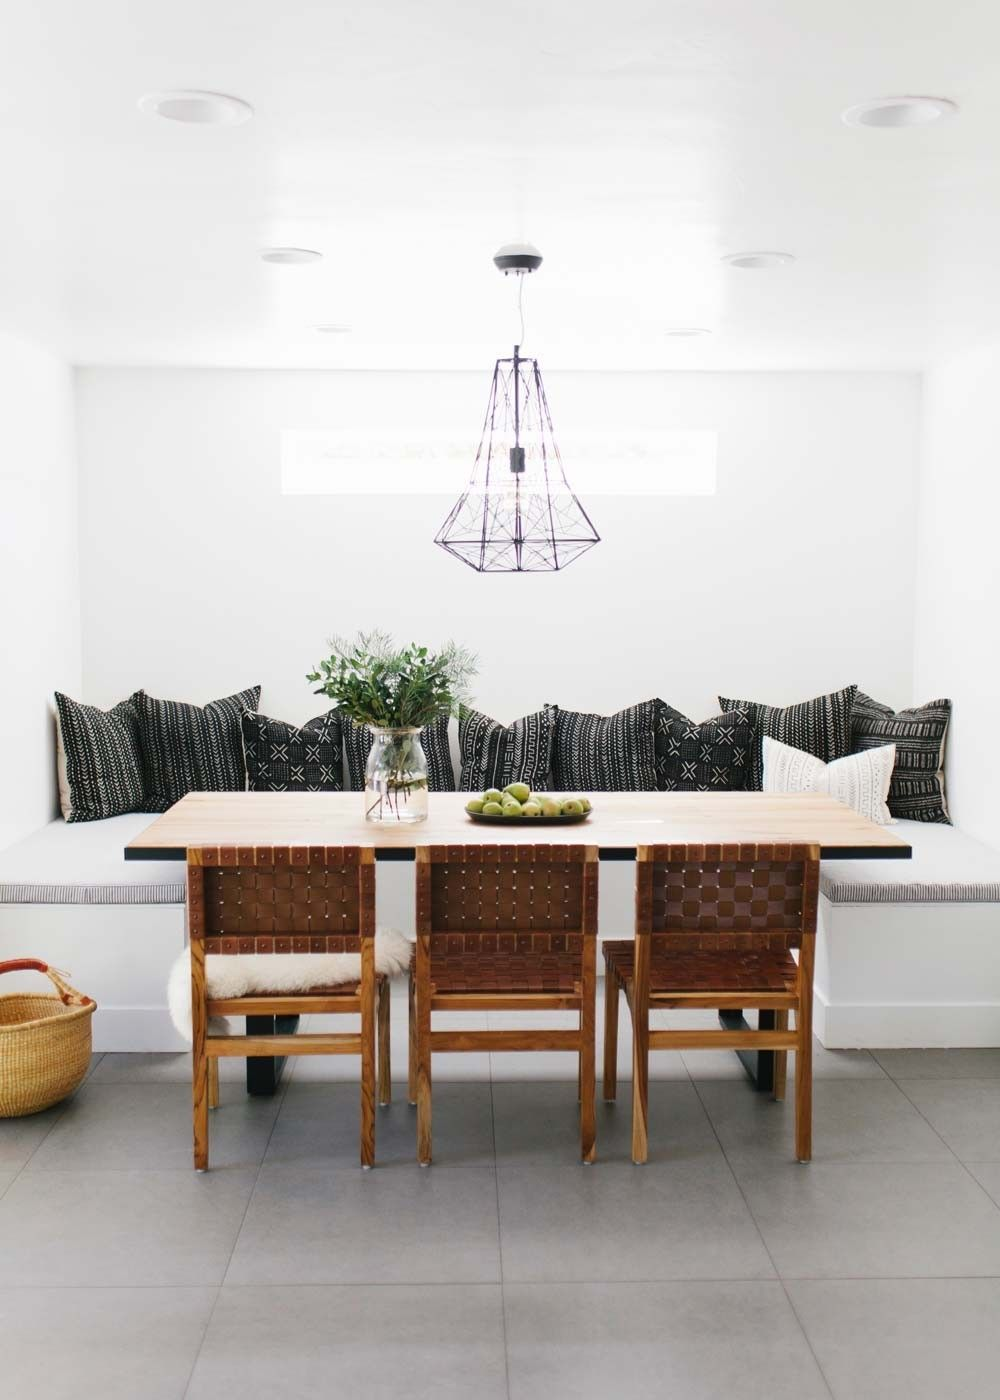 A midcentury home with worldly loom goods in salt lake city